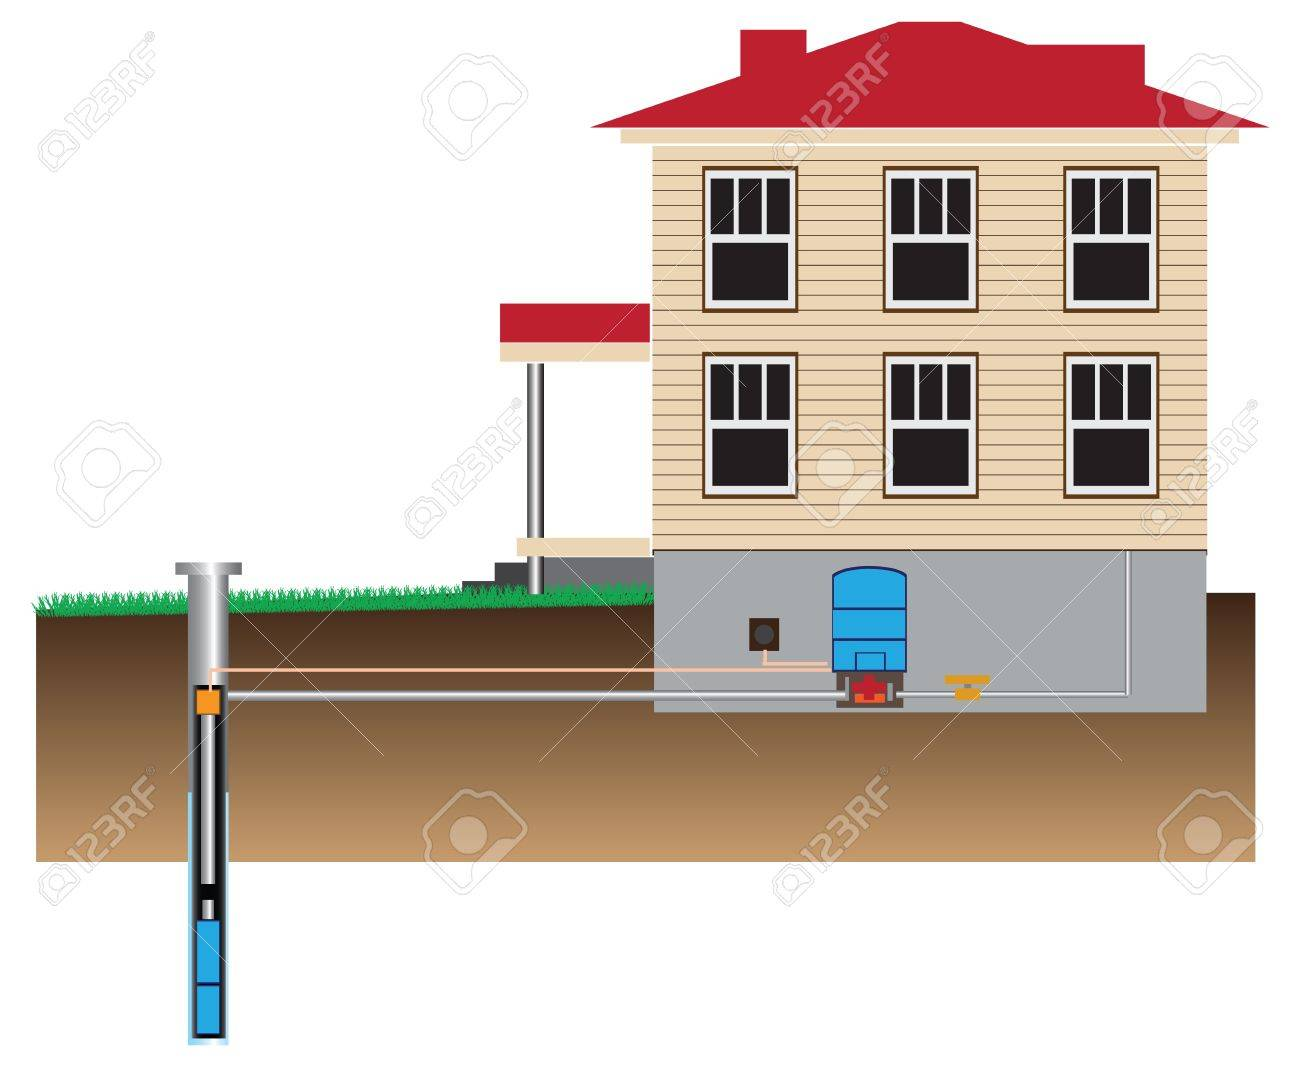 Water System pump house from the well. Vector illustration. Stock Vector - 15970330